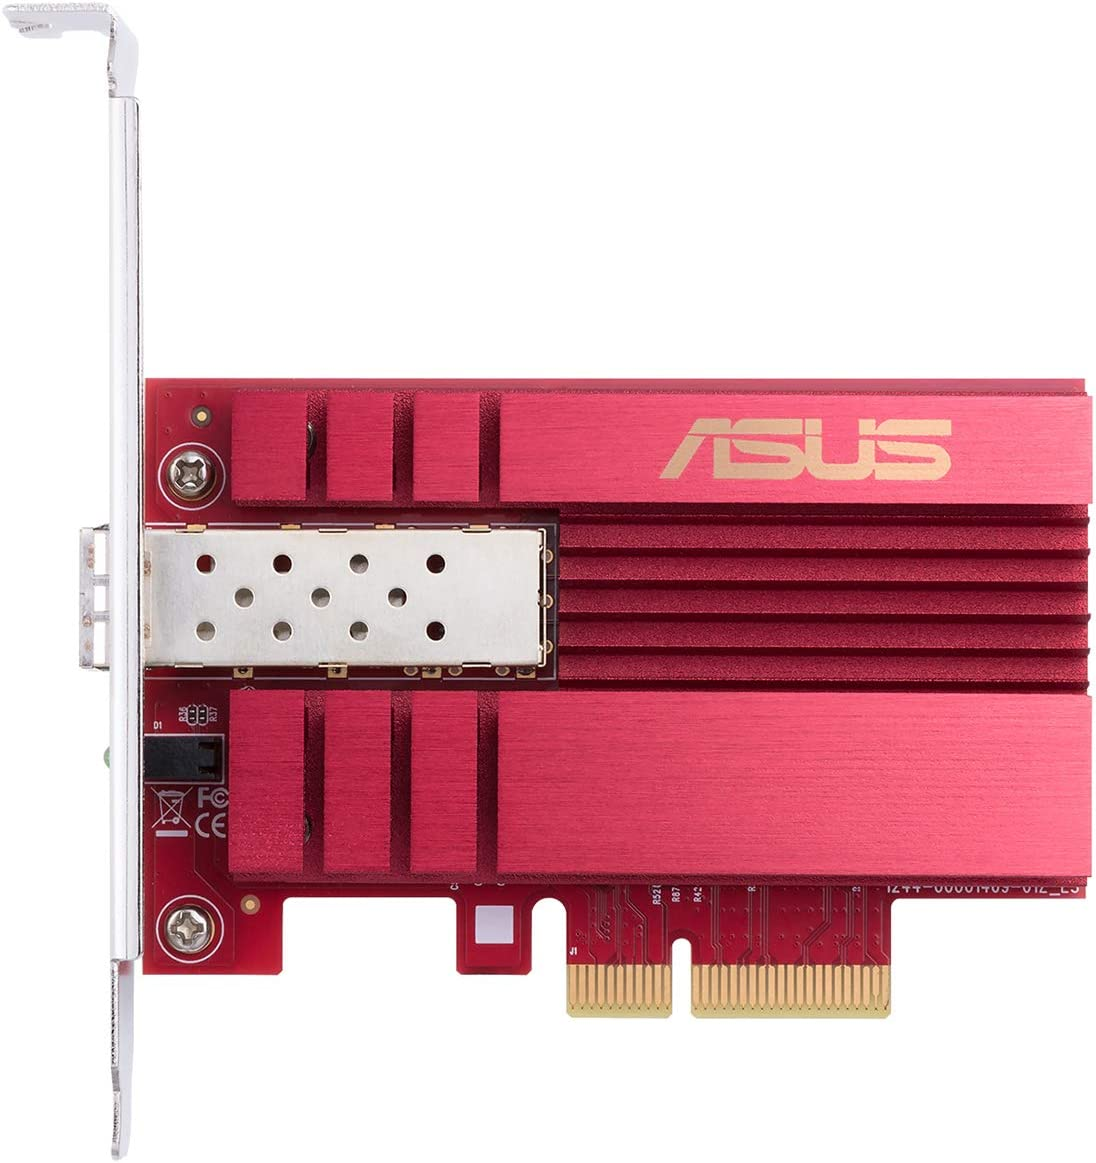 Asus 10Gbps Gigabit Ethernet PCI Express, Network Adapter PCIe 2.0/3.0 X4 SFP+ Network Card/Ethernet Card Support Fiber Optic (XG-C100F)